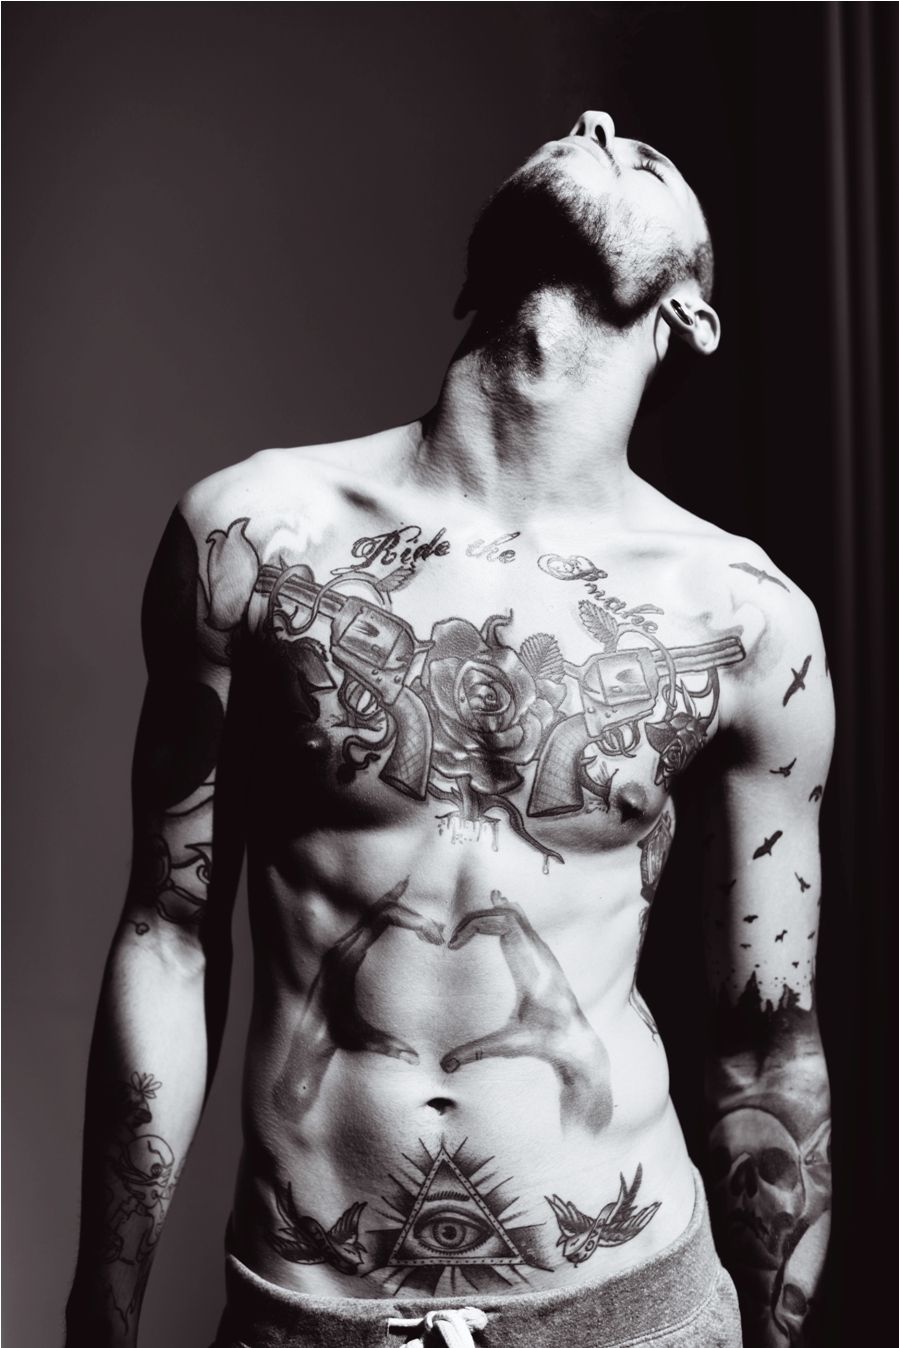 Tattoos for men love donut know who he is but i love a guy with tattoos  for header